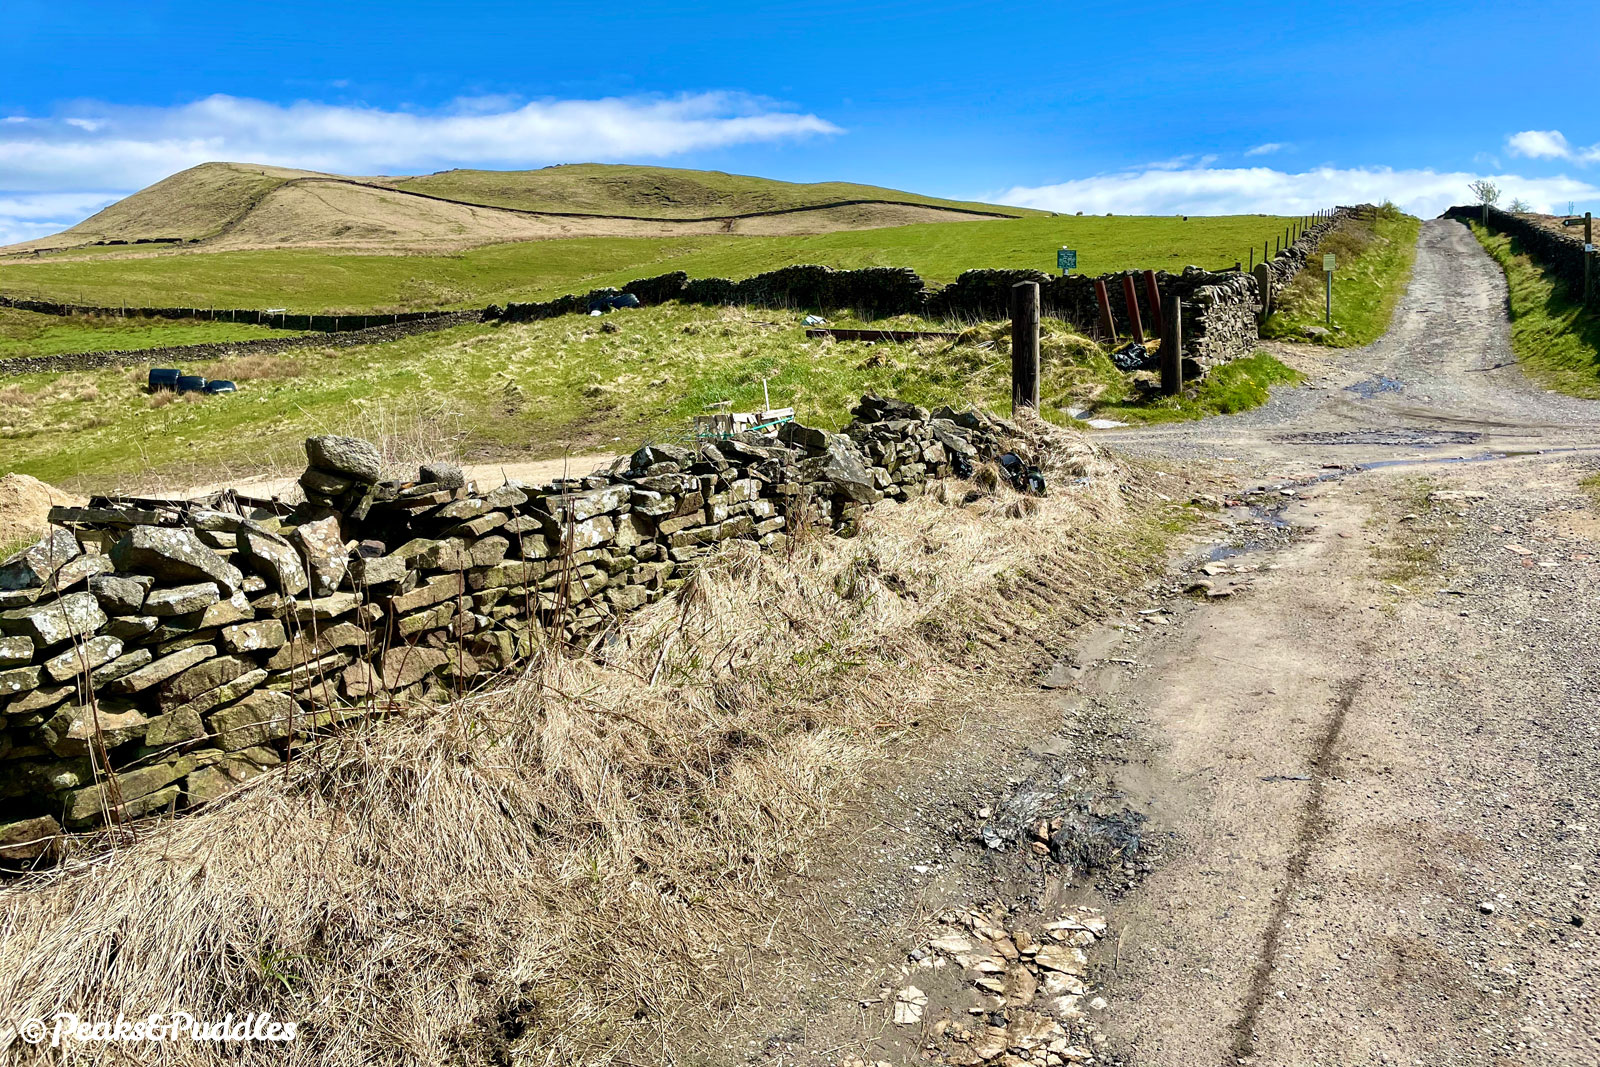 (Bridleway option) Nearing Mount Famine, the bridleway is met by the Pennine Bridleway from two directions.